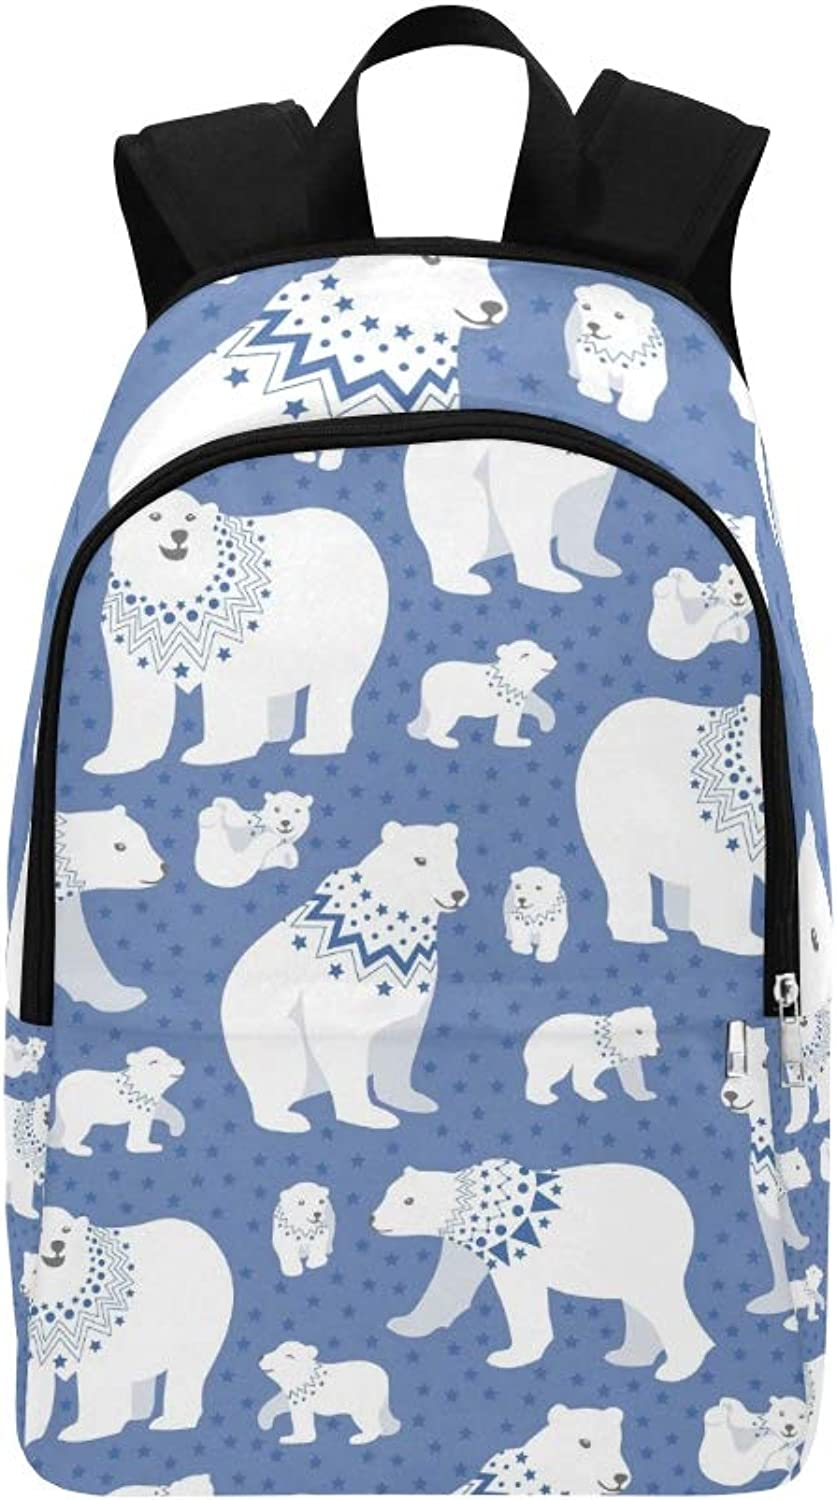 blueee Polar Bear Family Repeating Casual Daypack Travel Bag College School Backpack for Mens and Women